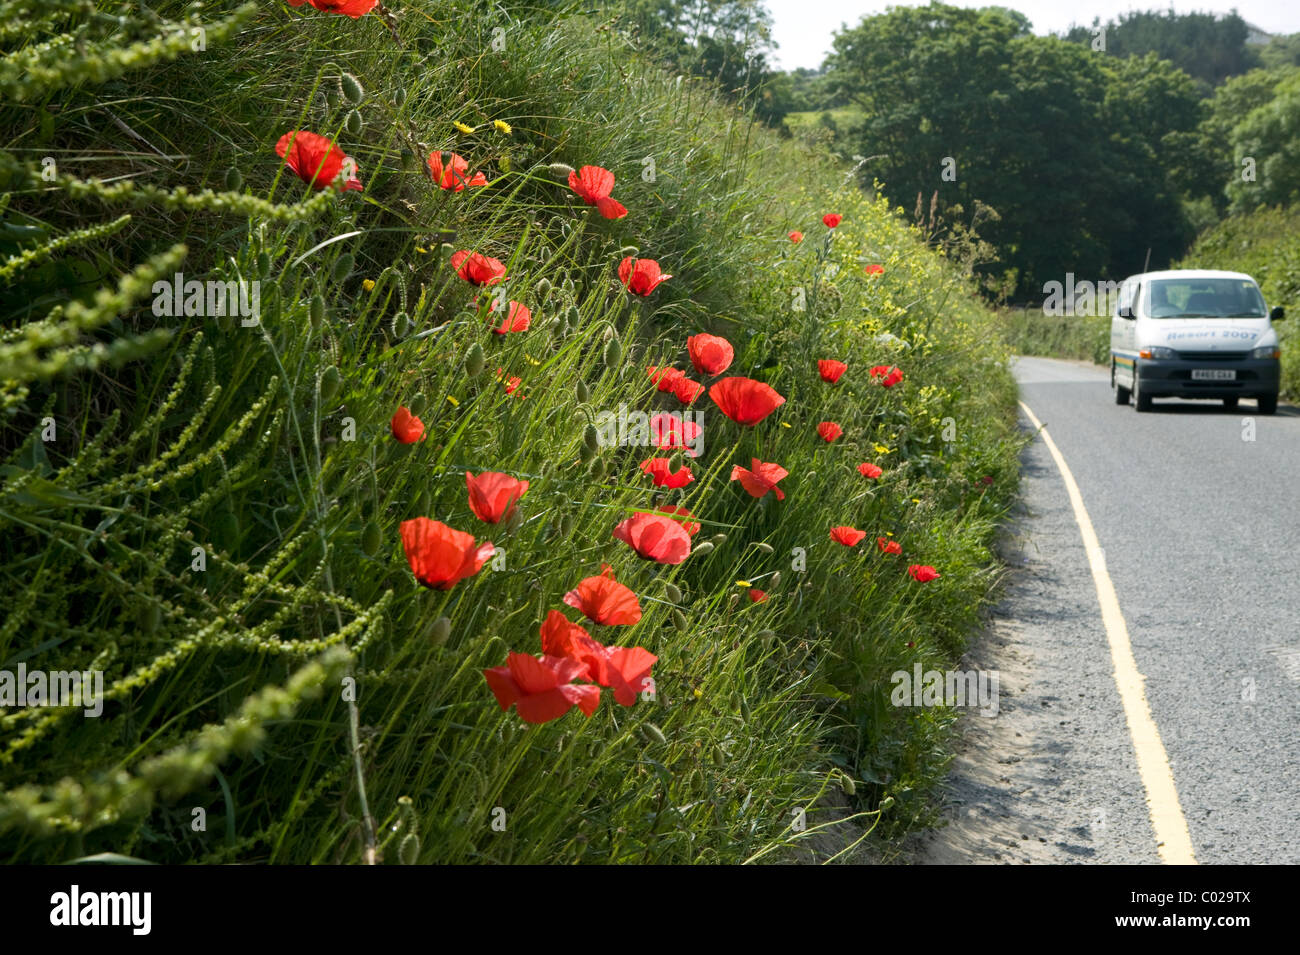 Poppies growing wild on a roadside verge - Stock Image